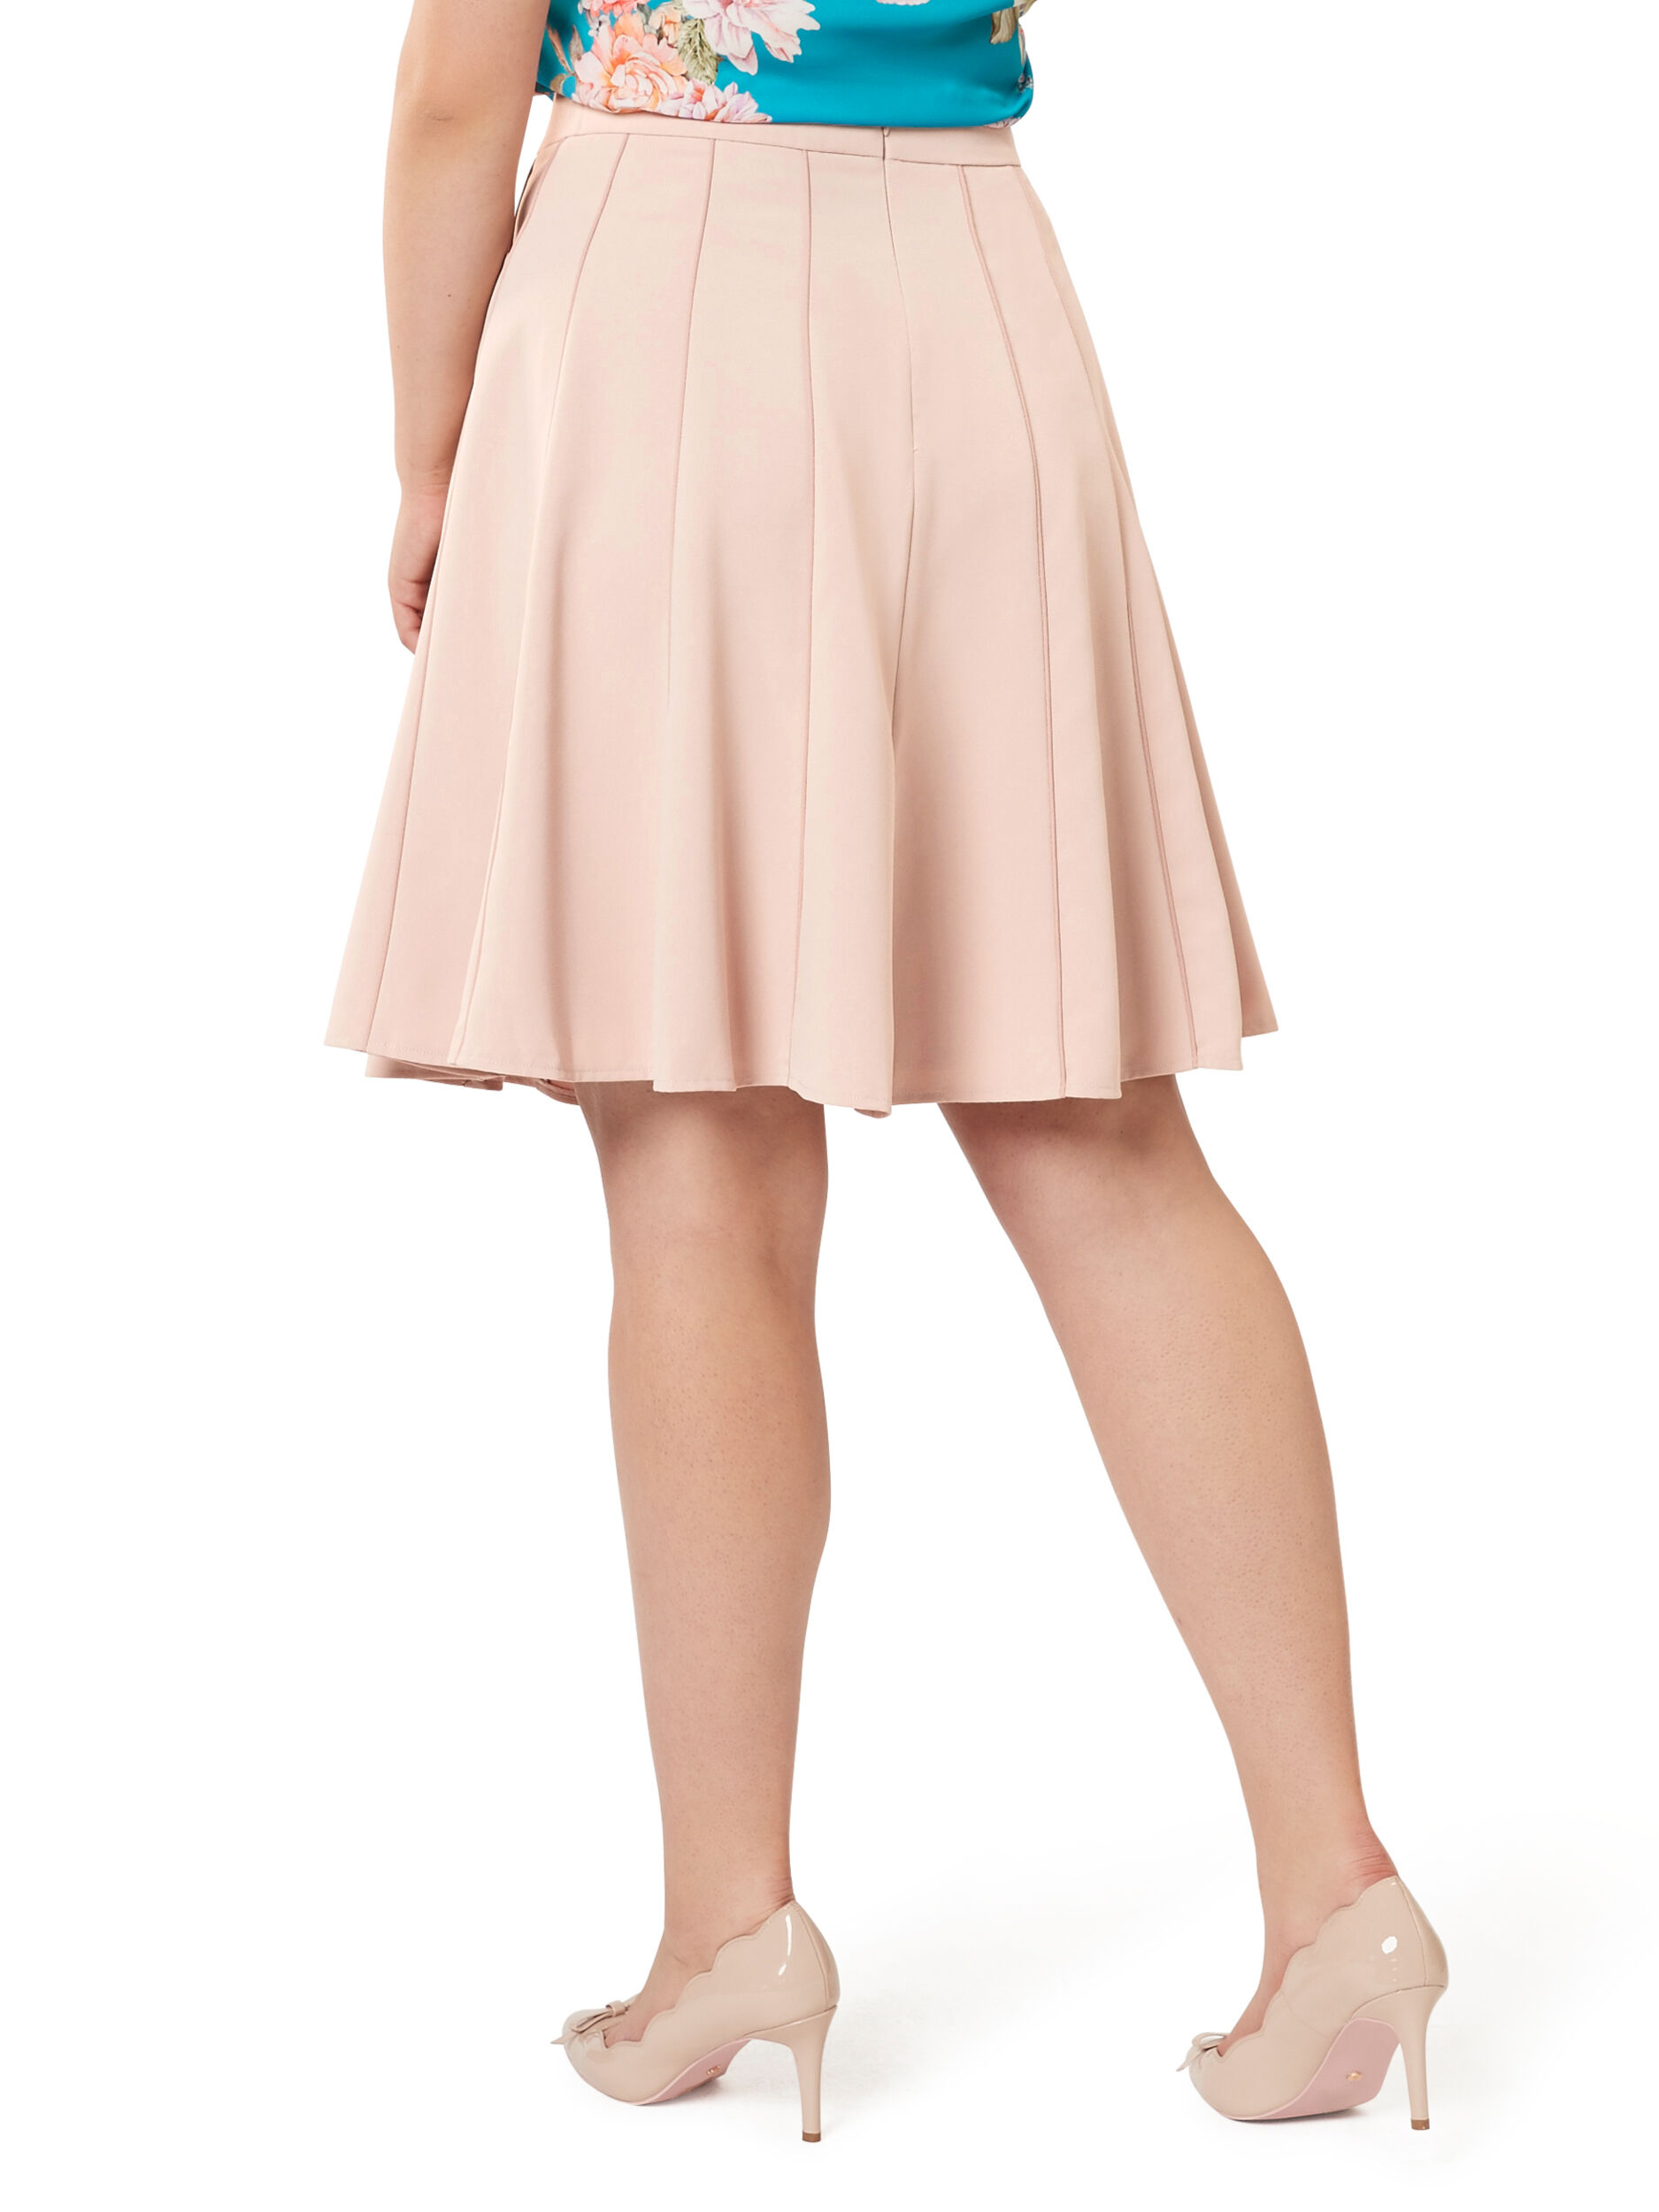 Aries Flippy Skirt